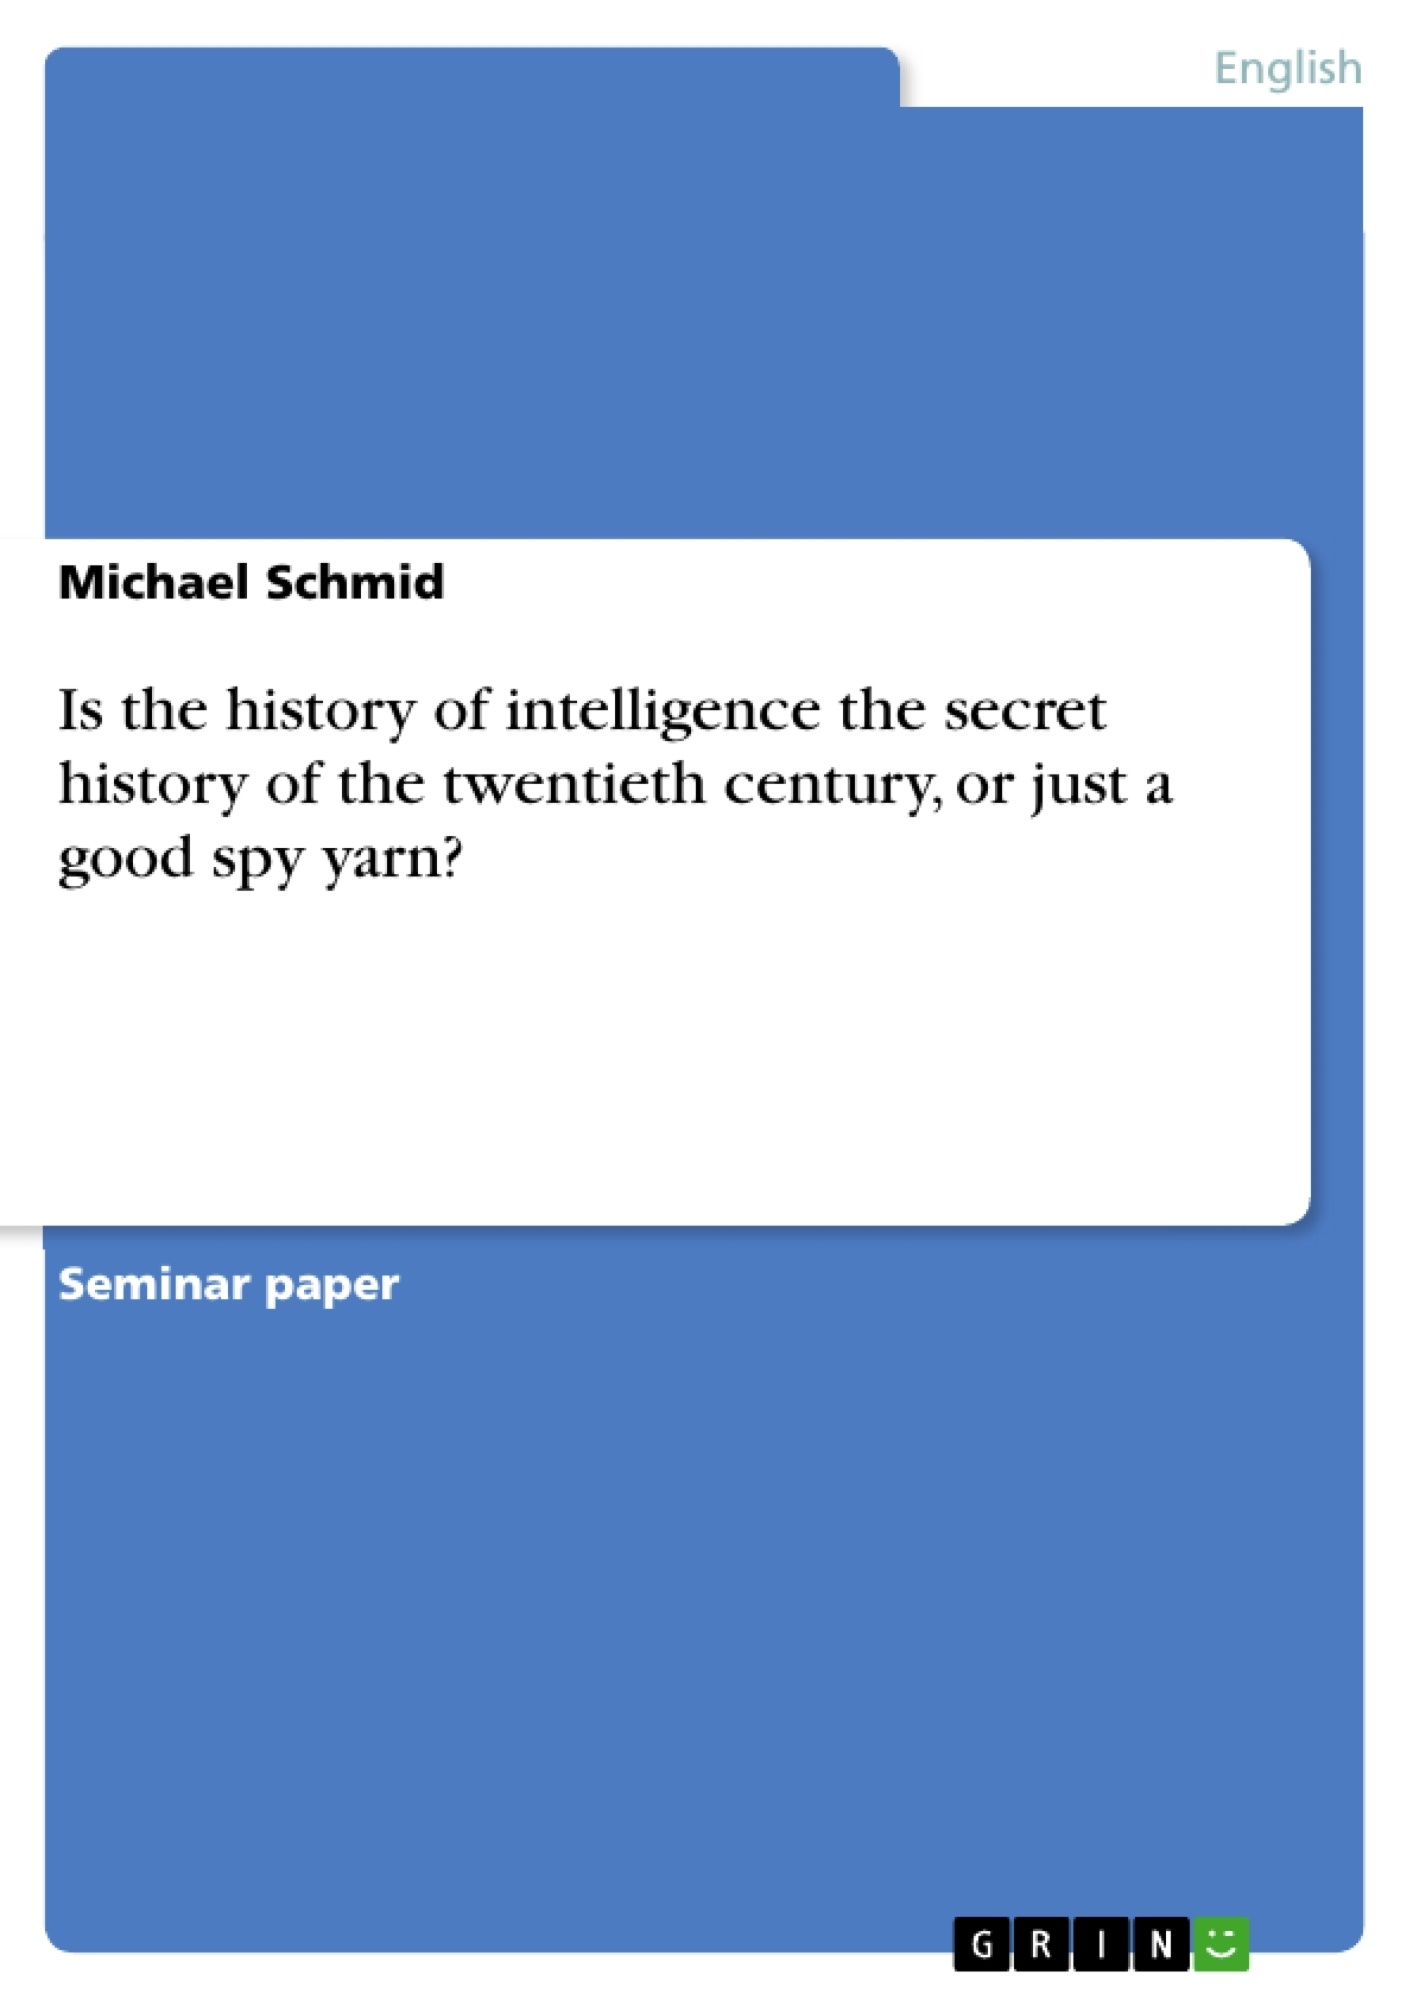 Title: Is the history of intelligence the secret history of the twentieth century, or just a good spy yarn?